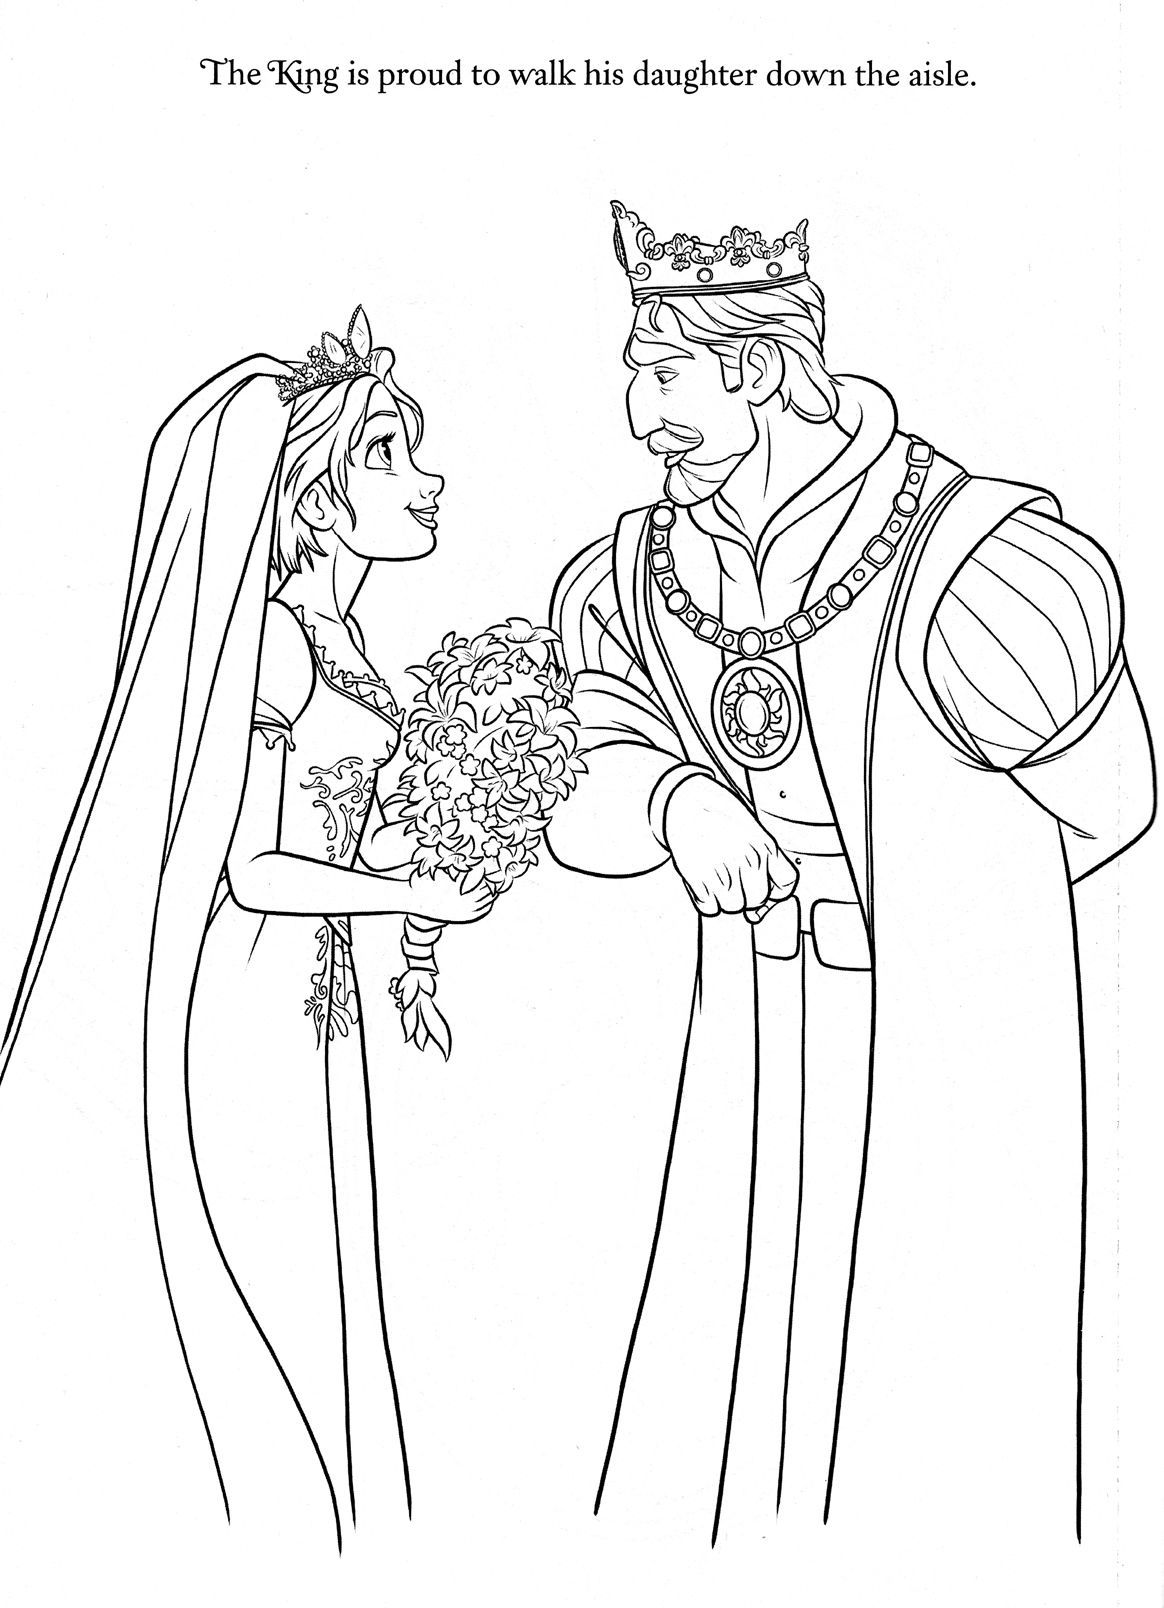 wedding day disney wedding coloring pages rapunzel wedding coloring papges 10 months ago with 36 wedding wedding pages disney coloring day